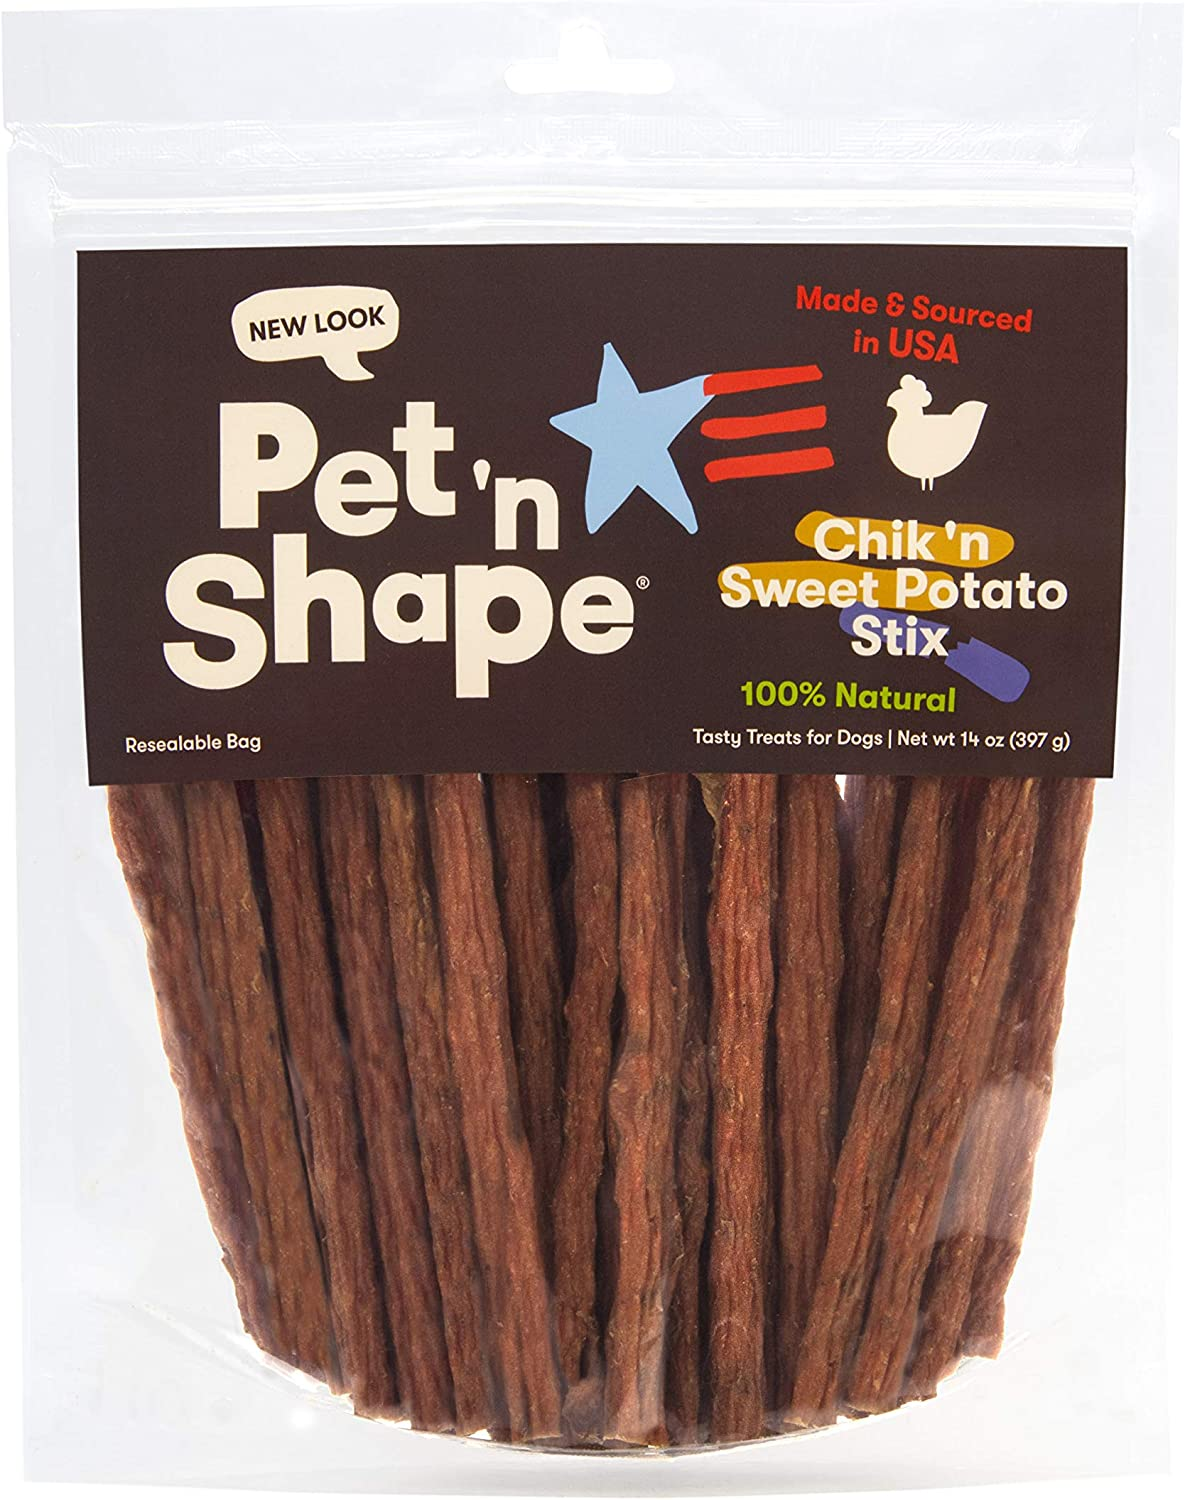 Pet 'n Shape Chik 'n Sweet Potato Stix – Made and Sourced in the USA-All Natural Healthy Dog Treat